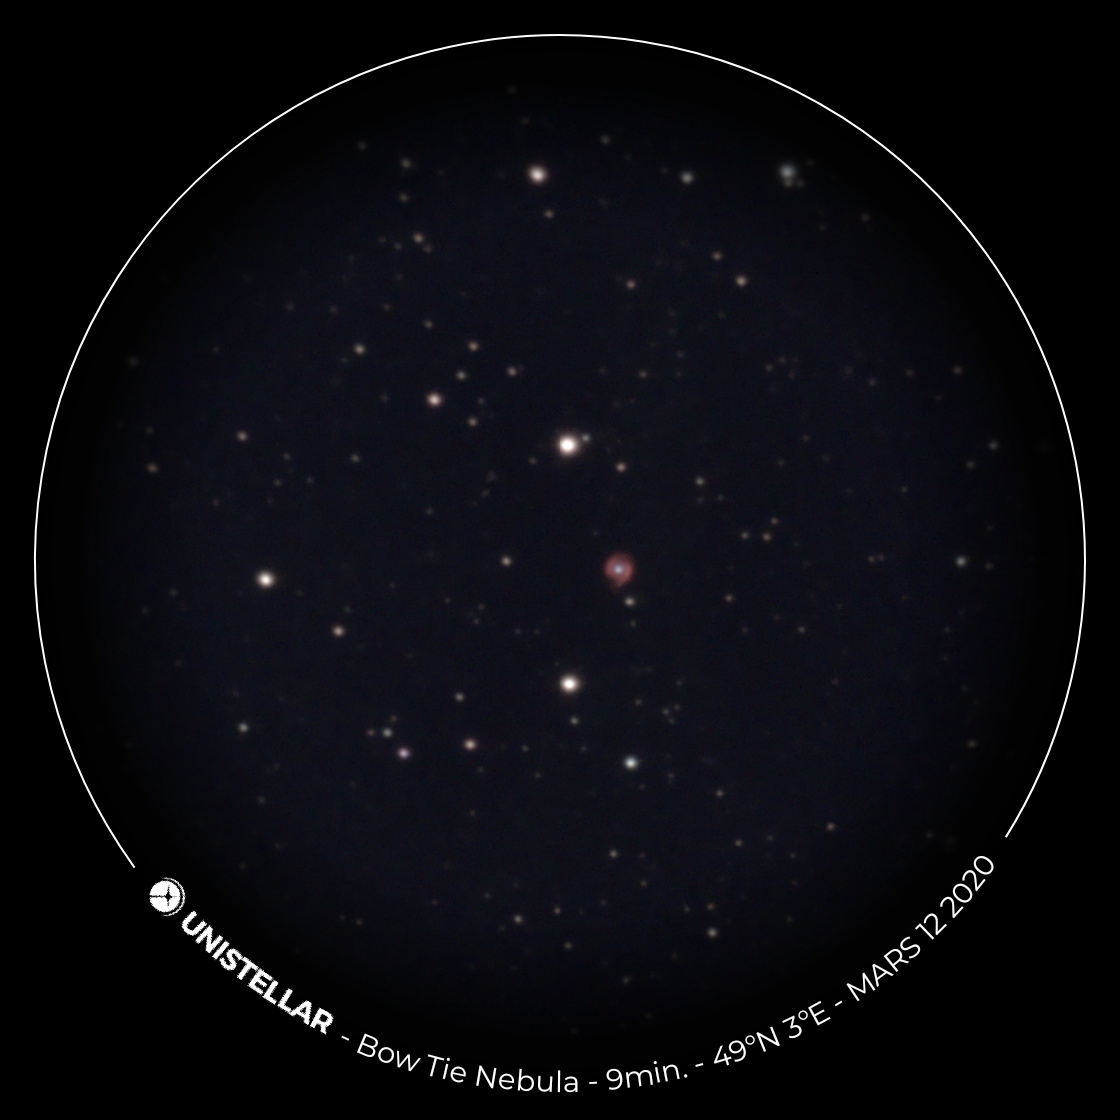 eVscope-20200312-213108.png